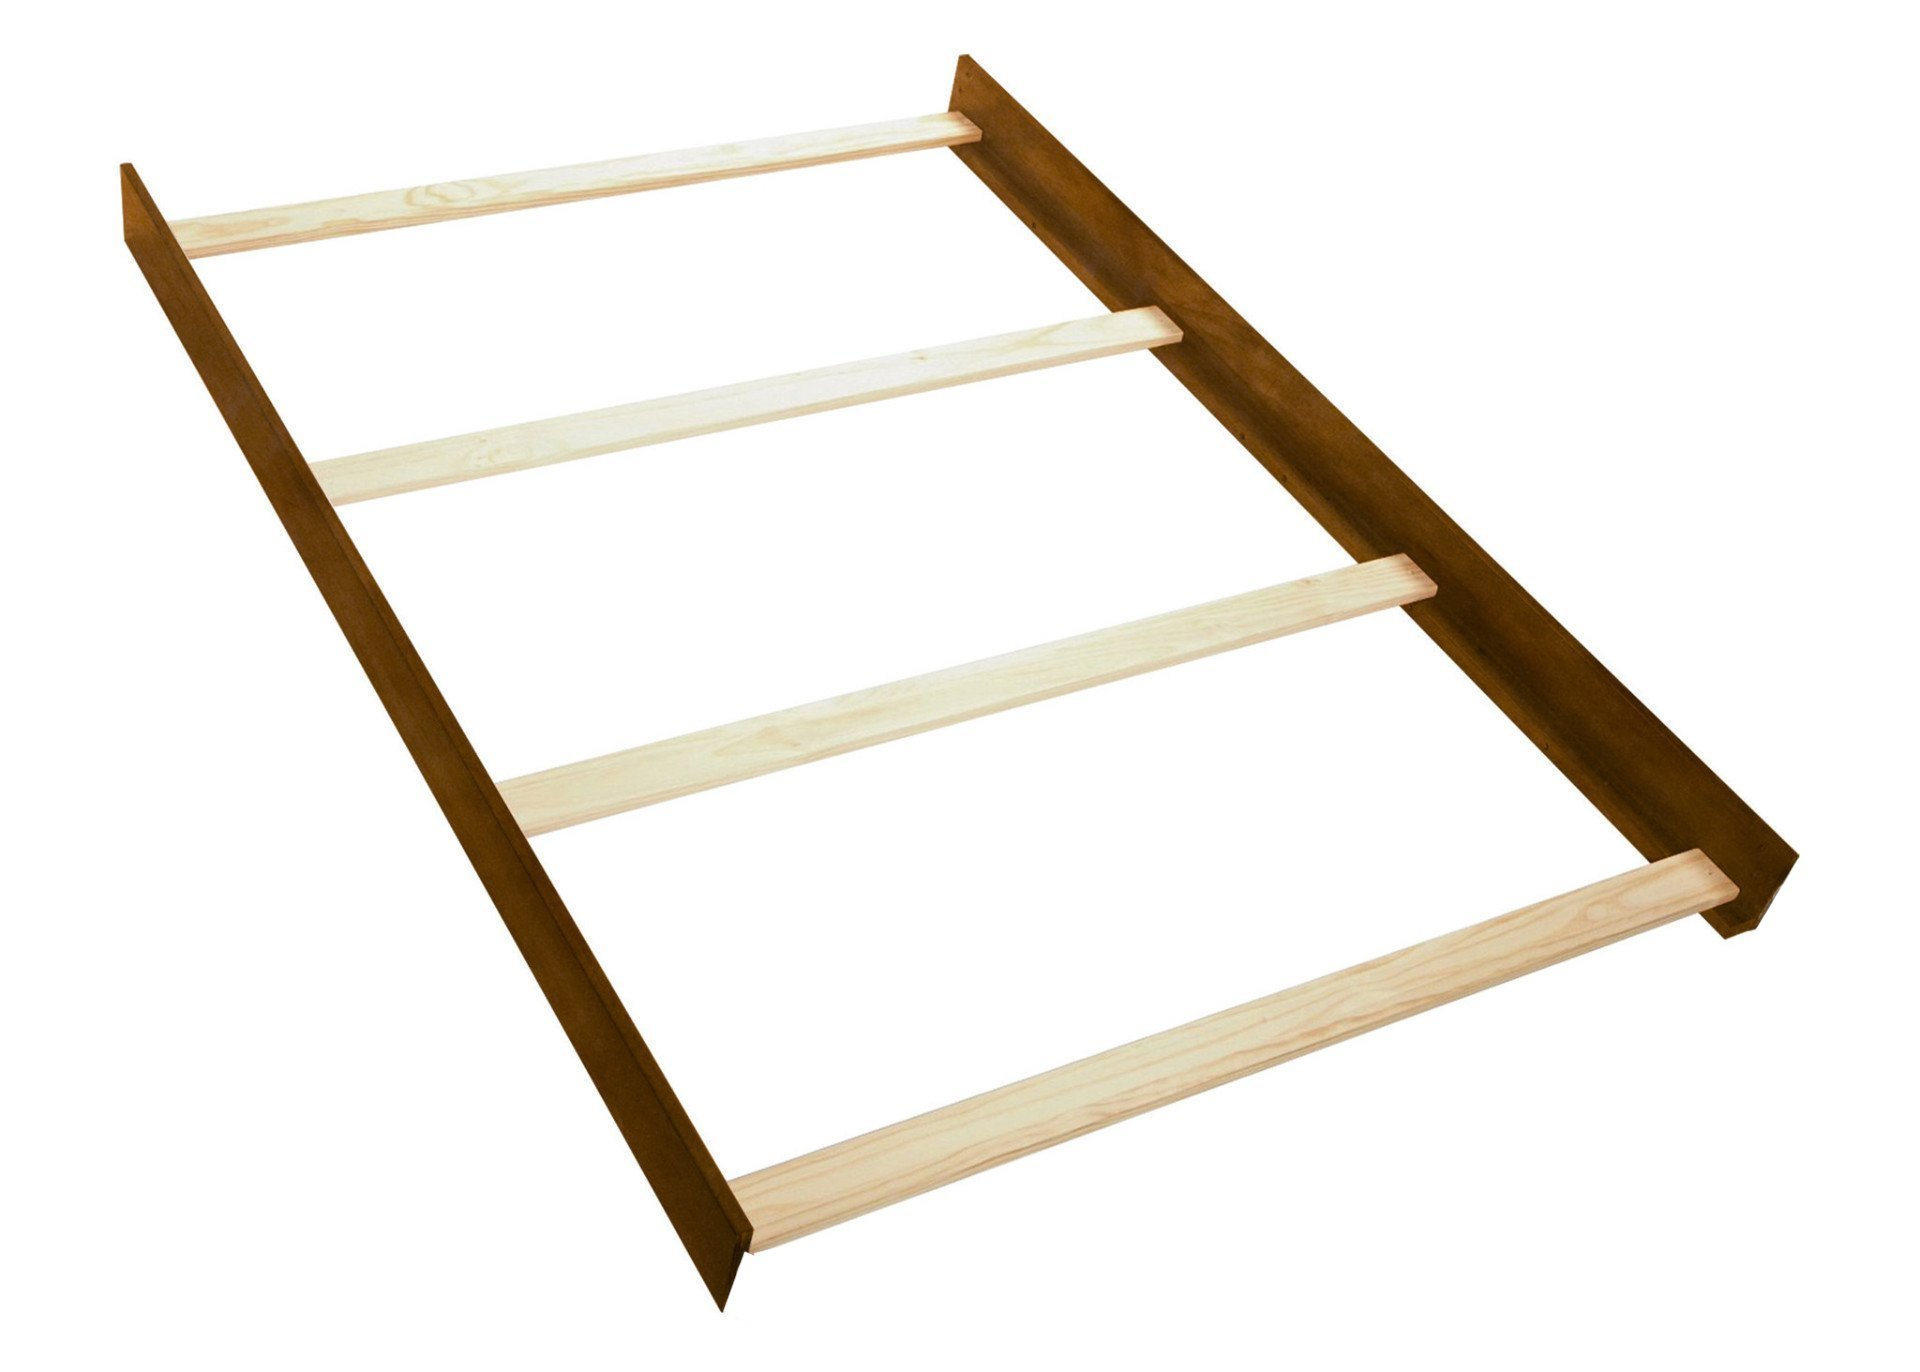 Discounted - Full Size Conversion Kit Bed Rails for Baby Cache Cribs - Sale! (Chocolate) by CC KITS